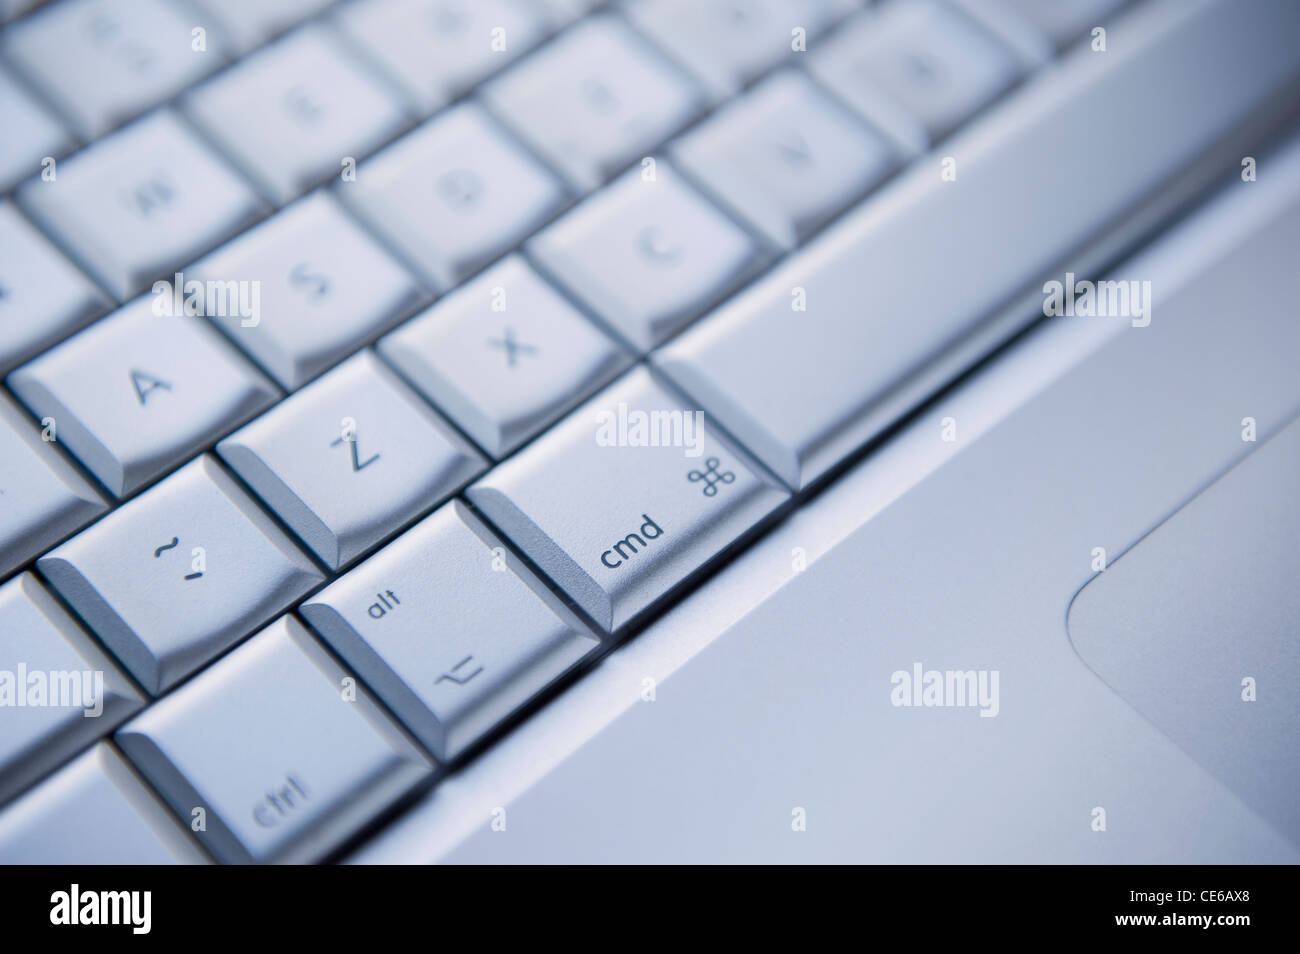 Close up of an Apple Mac Pro Keyboard, focusing on the Command Key